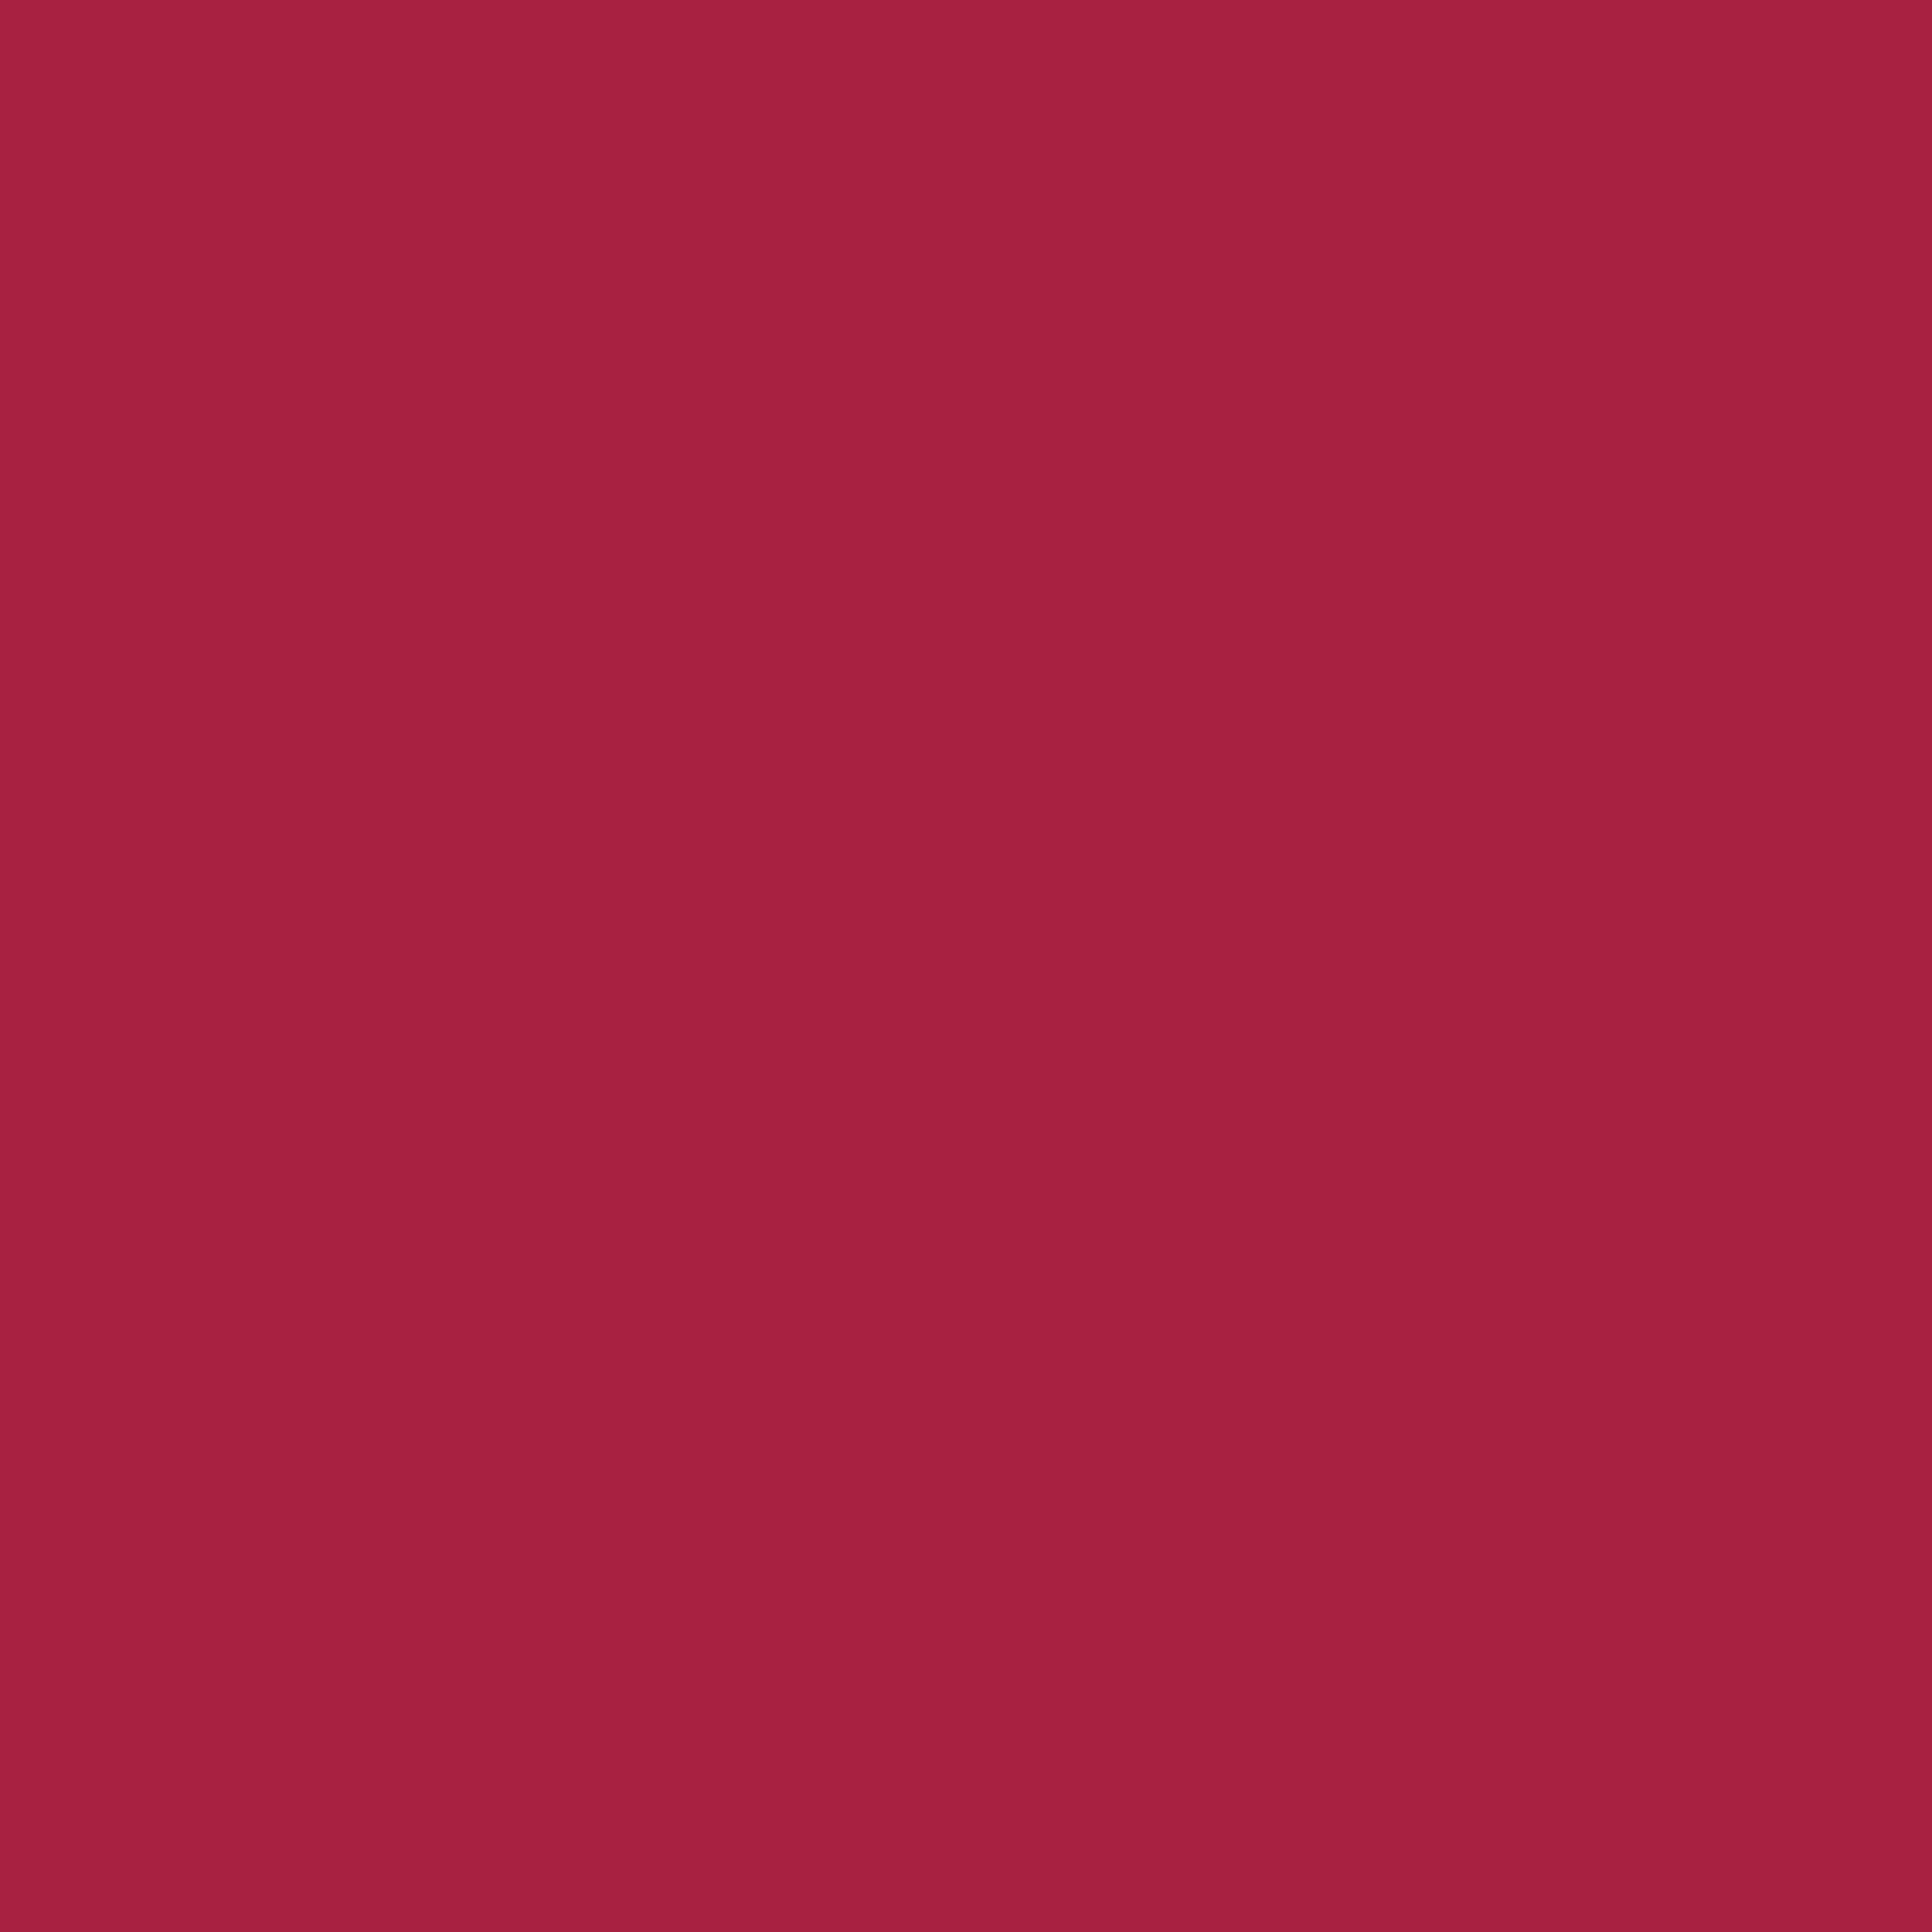 2732x2732 Deep Carmine Solid Color Background